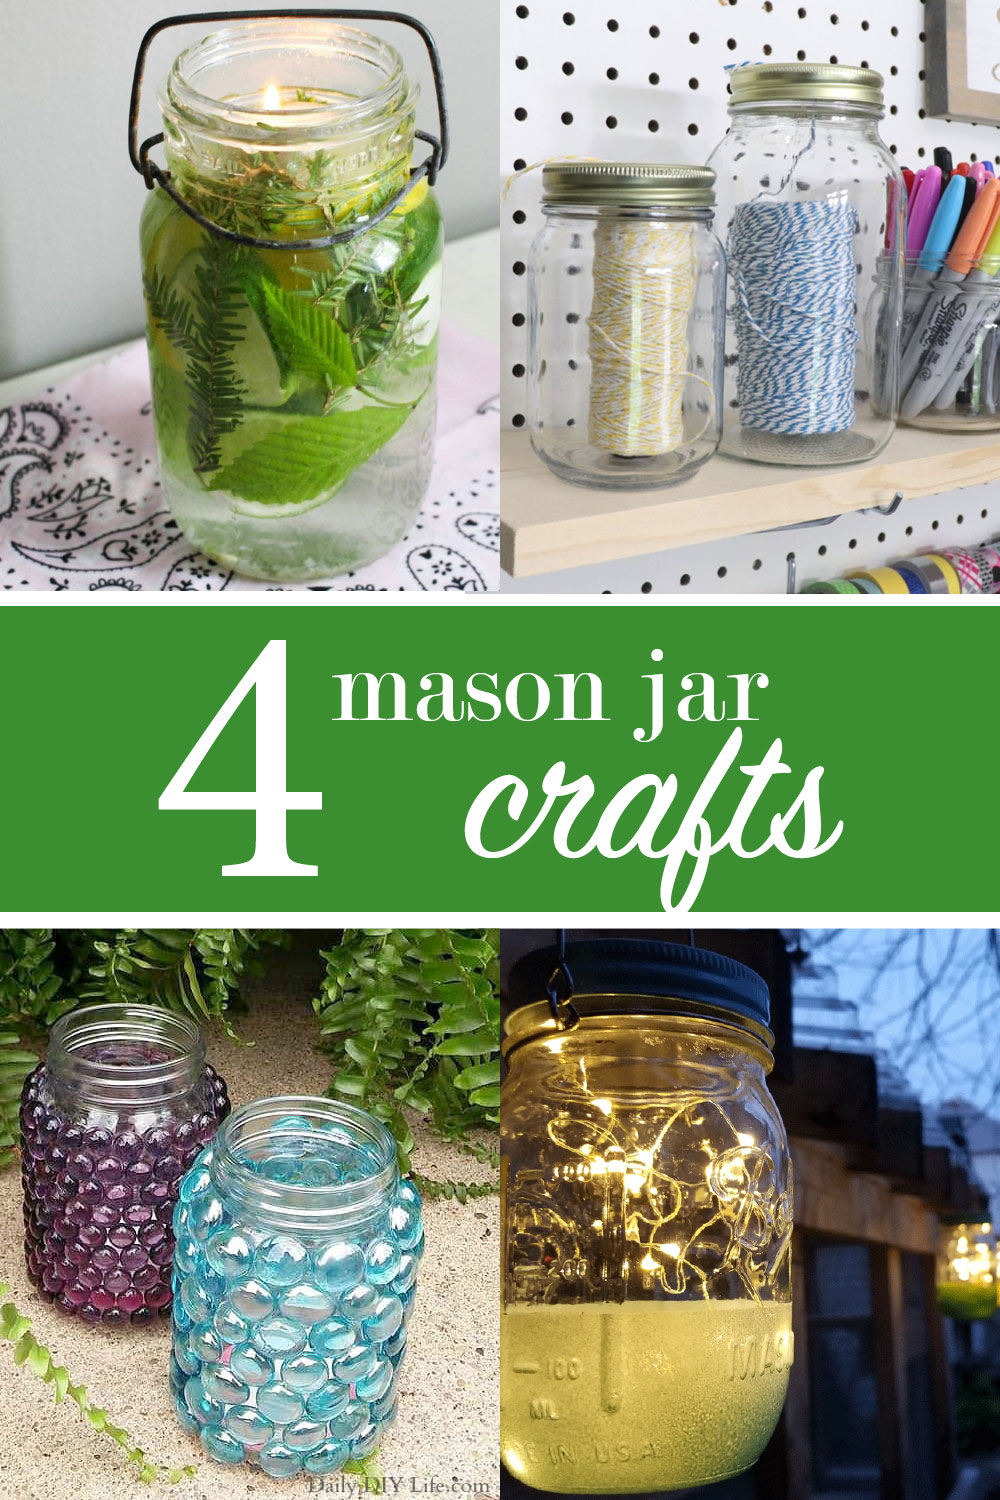 4-mason-jar-crafts